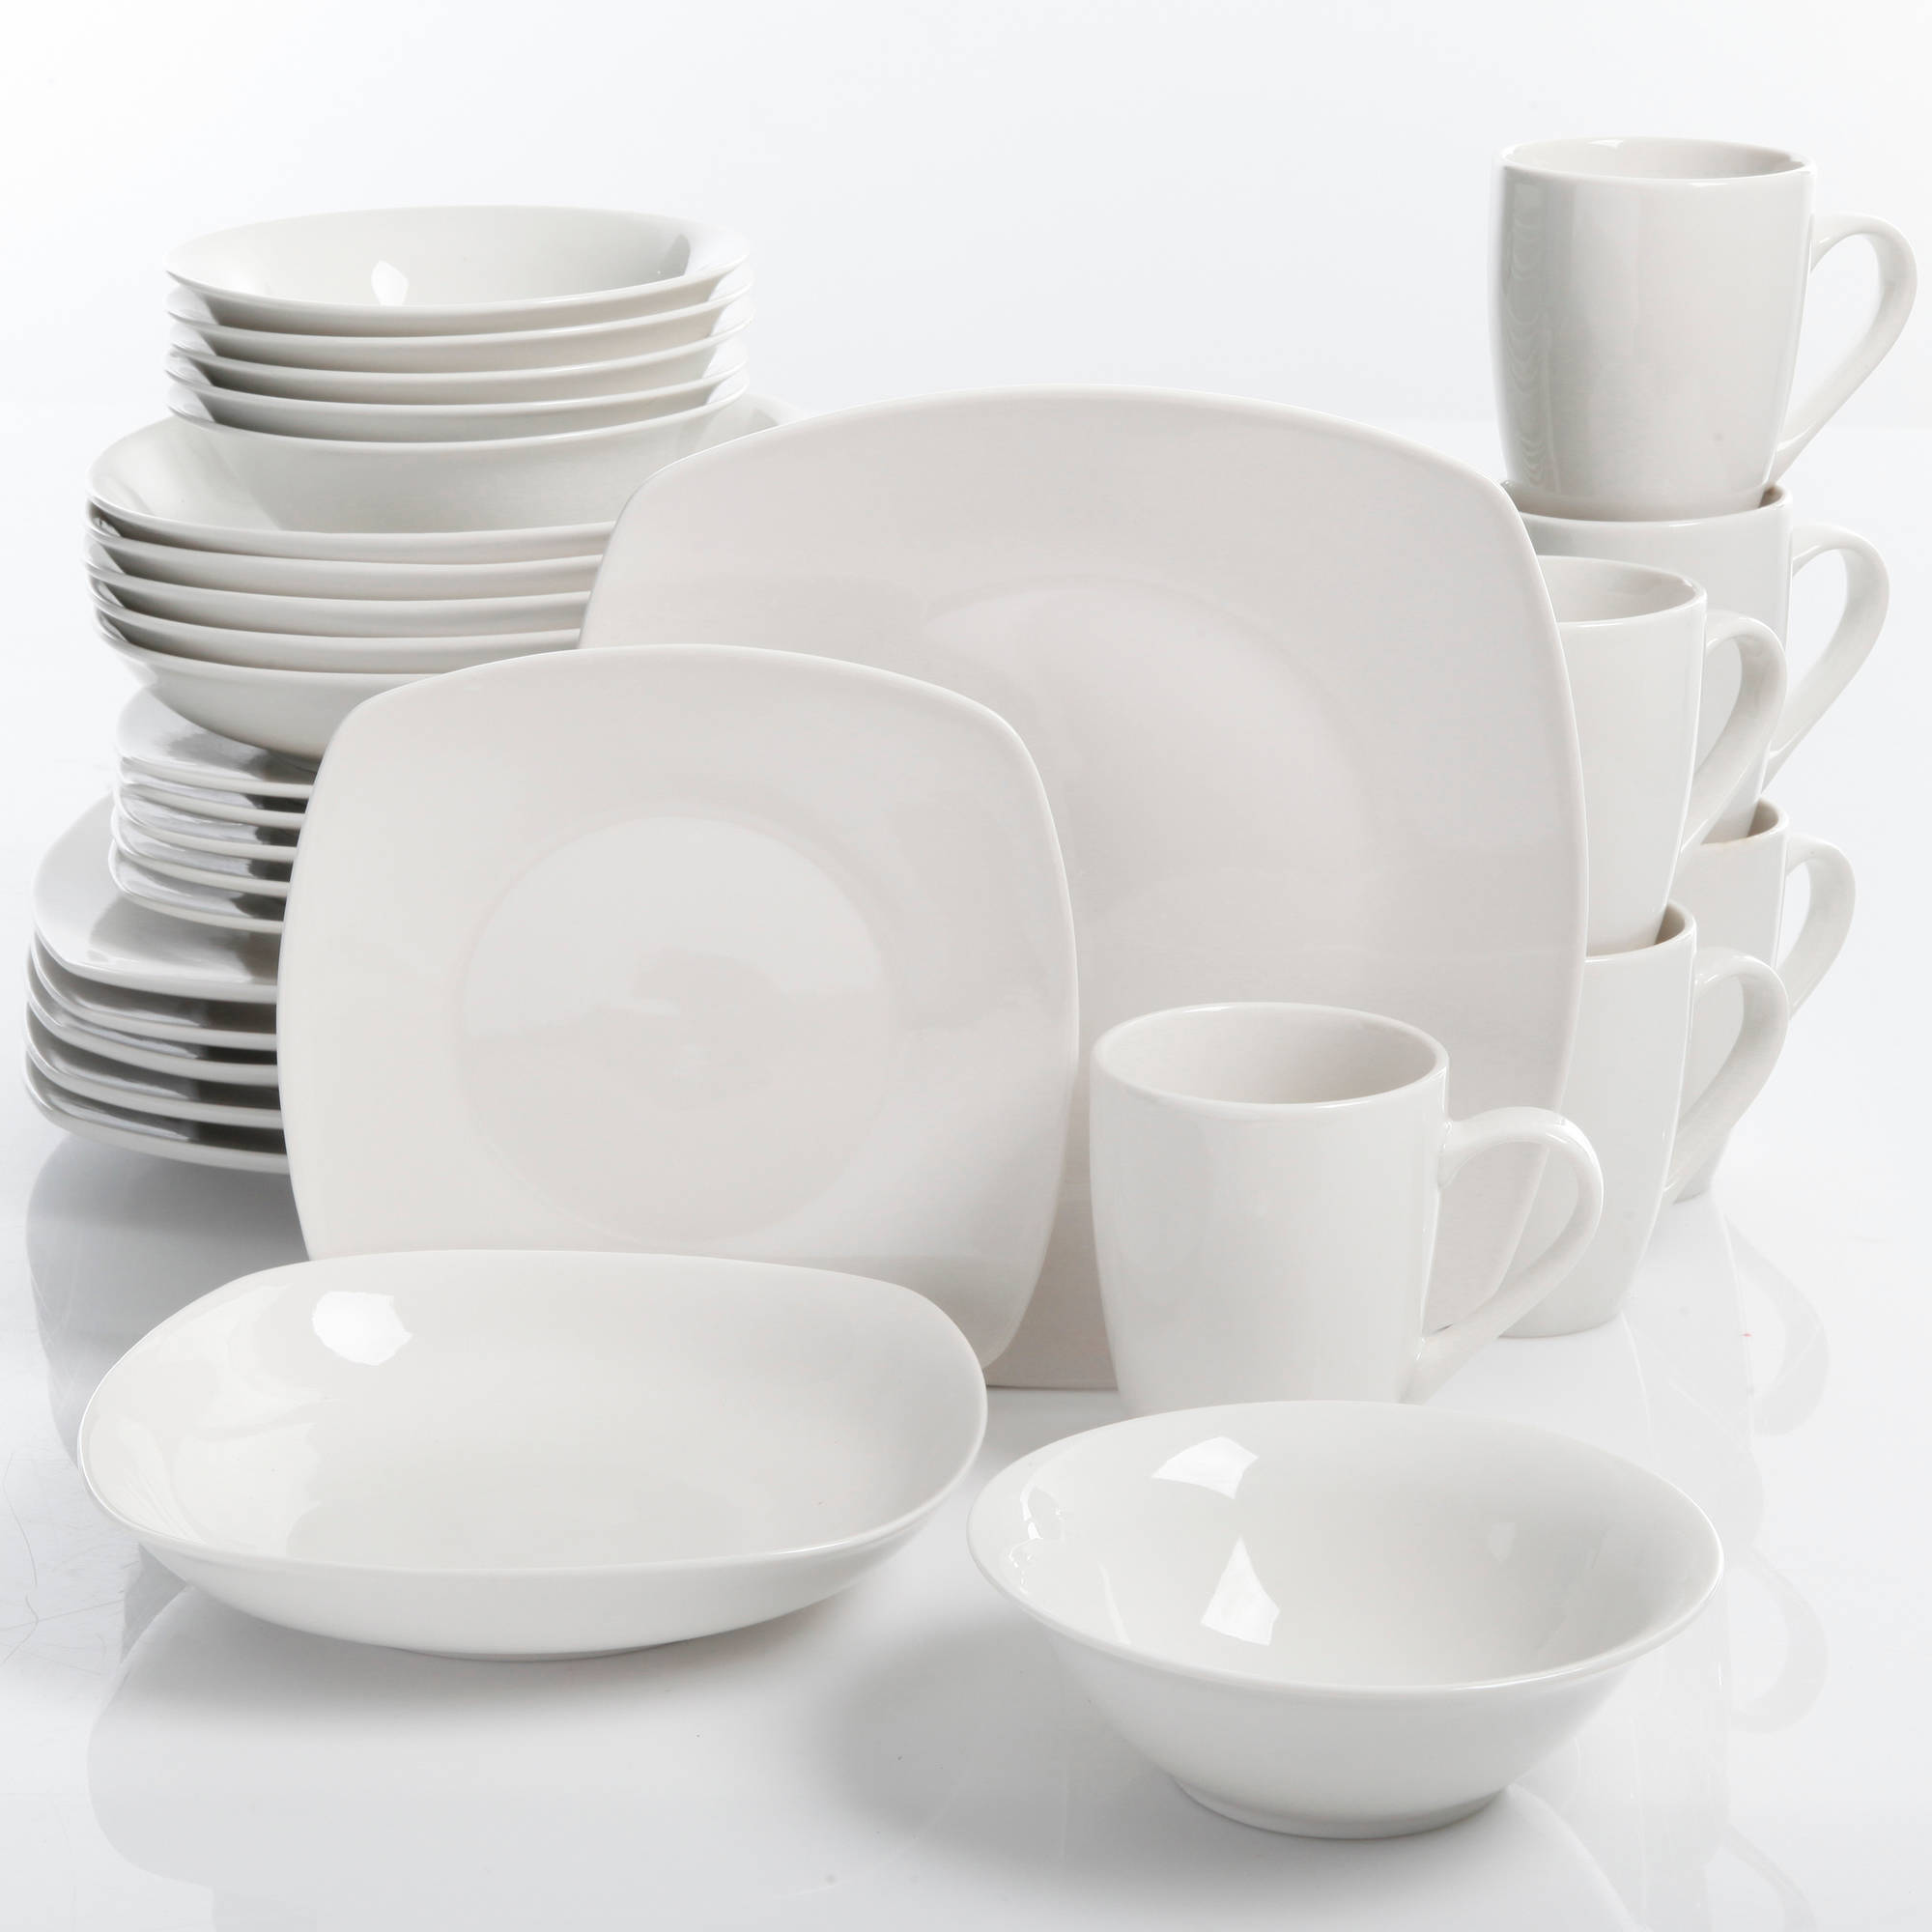 30-Piece Porcelain Dinnerware Set Square Dinner Plates Dish Service For 6 White : dinnerware service for 6 - pezcame.com